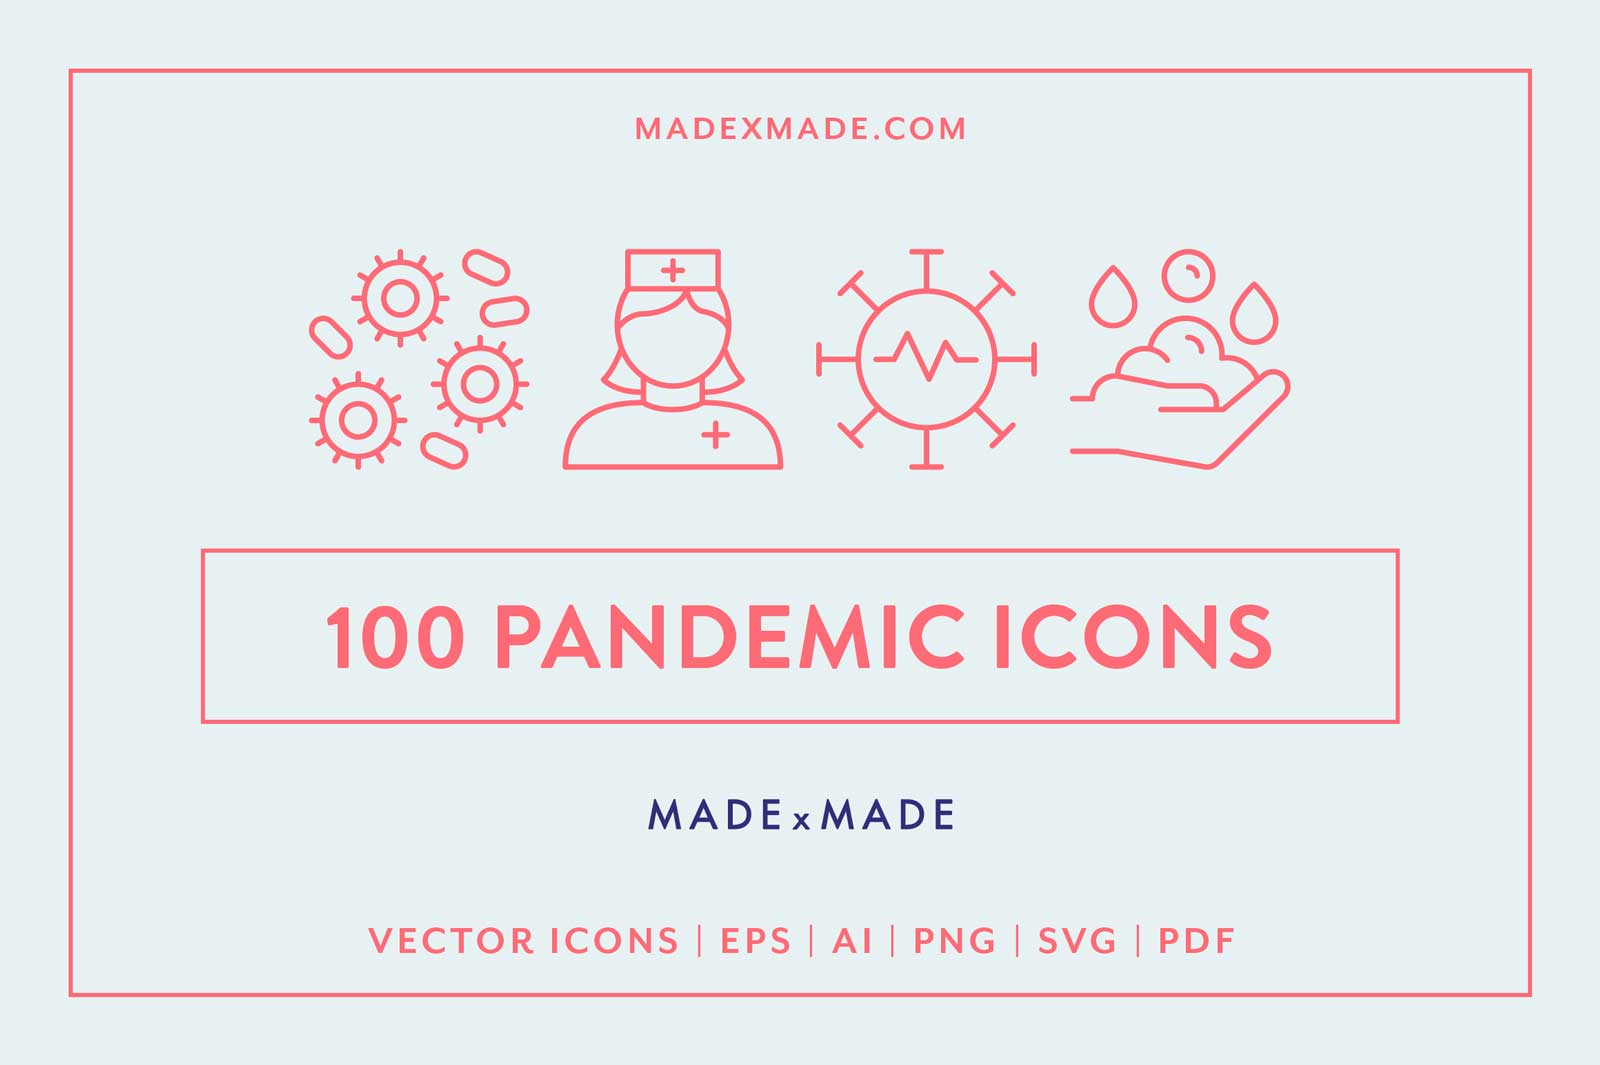 made x made icons pandemic